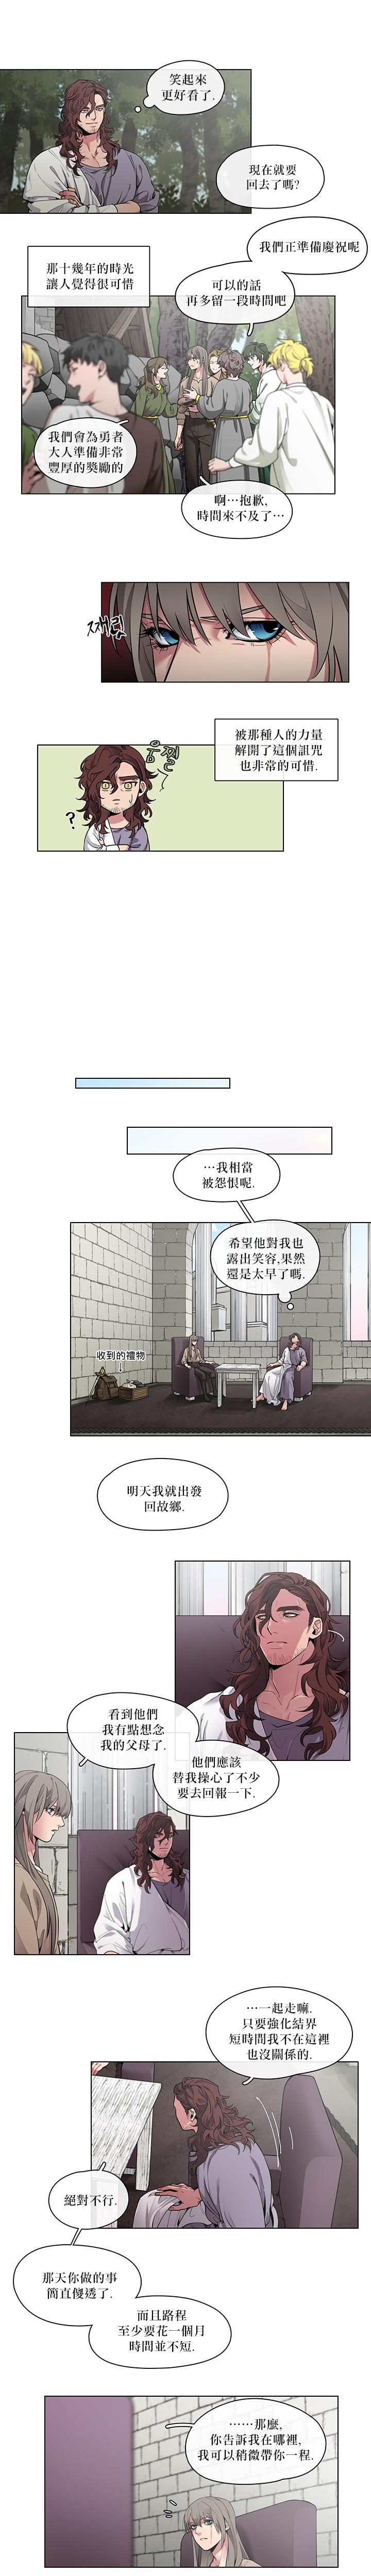 The Warrior and the Deity   勇者与山神 Ch. 2-6+加笔1+加笔2 52